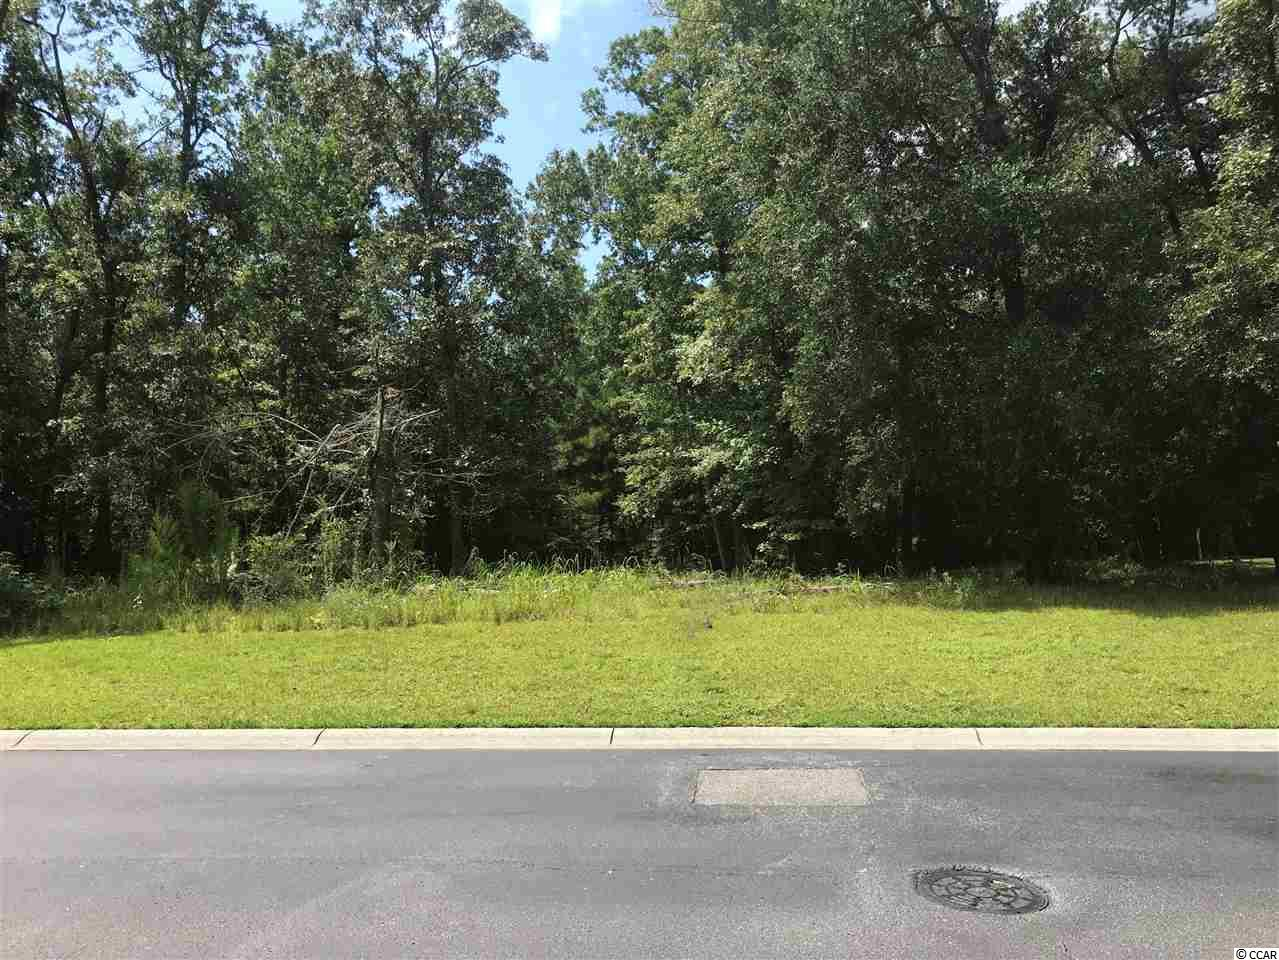 Build your dream home in the prestigious Dye Estates, an ICW community! This corner lot is almost 1 acre, .94 of an acre to be exact. The amenities include a private oceanfront beach cabana with a shuttle to and from Barefoot Resort, an amazing salt water swimming pool on the intercoastal waterway,  beautiful clubhouse, driving range, 4 golf courses and a marina to launch your boat. Dye Estates is a gated community with 24 Hour Security.